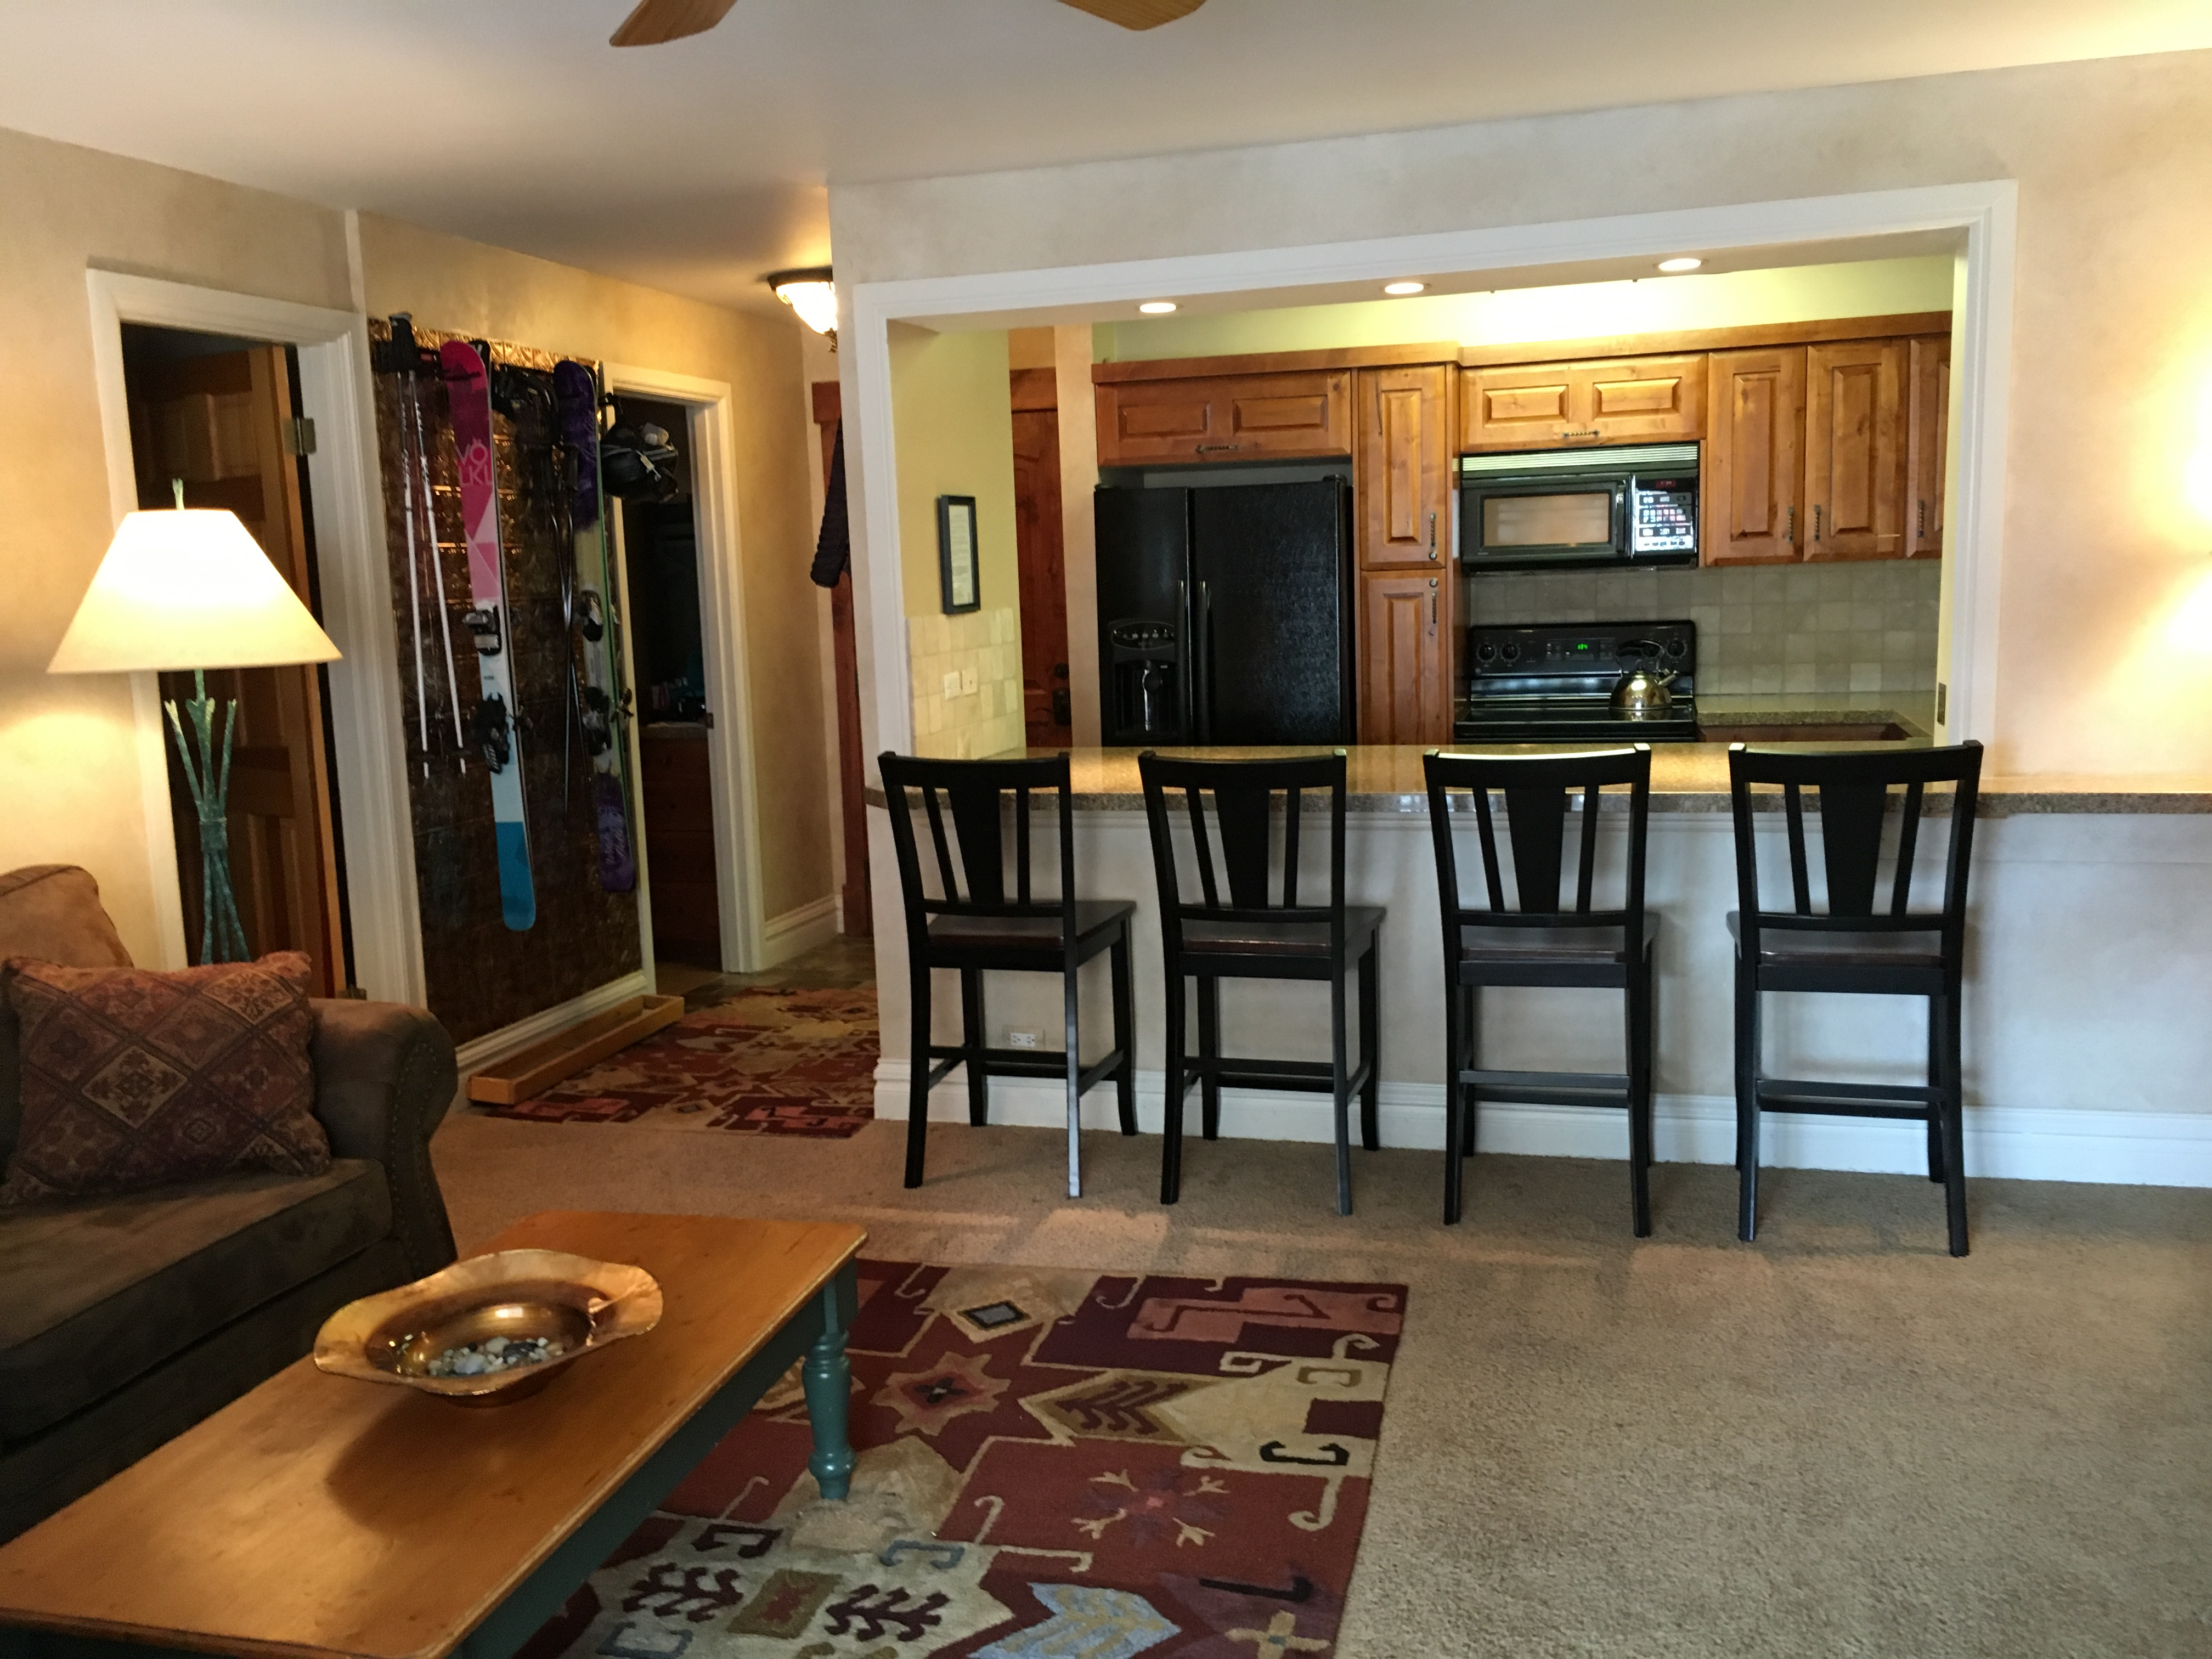 New Counter Chairs